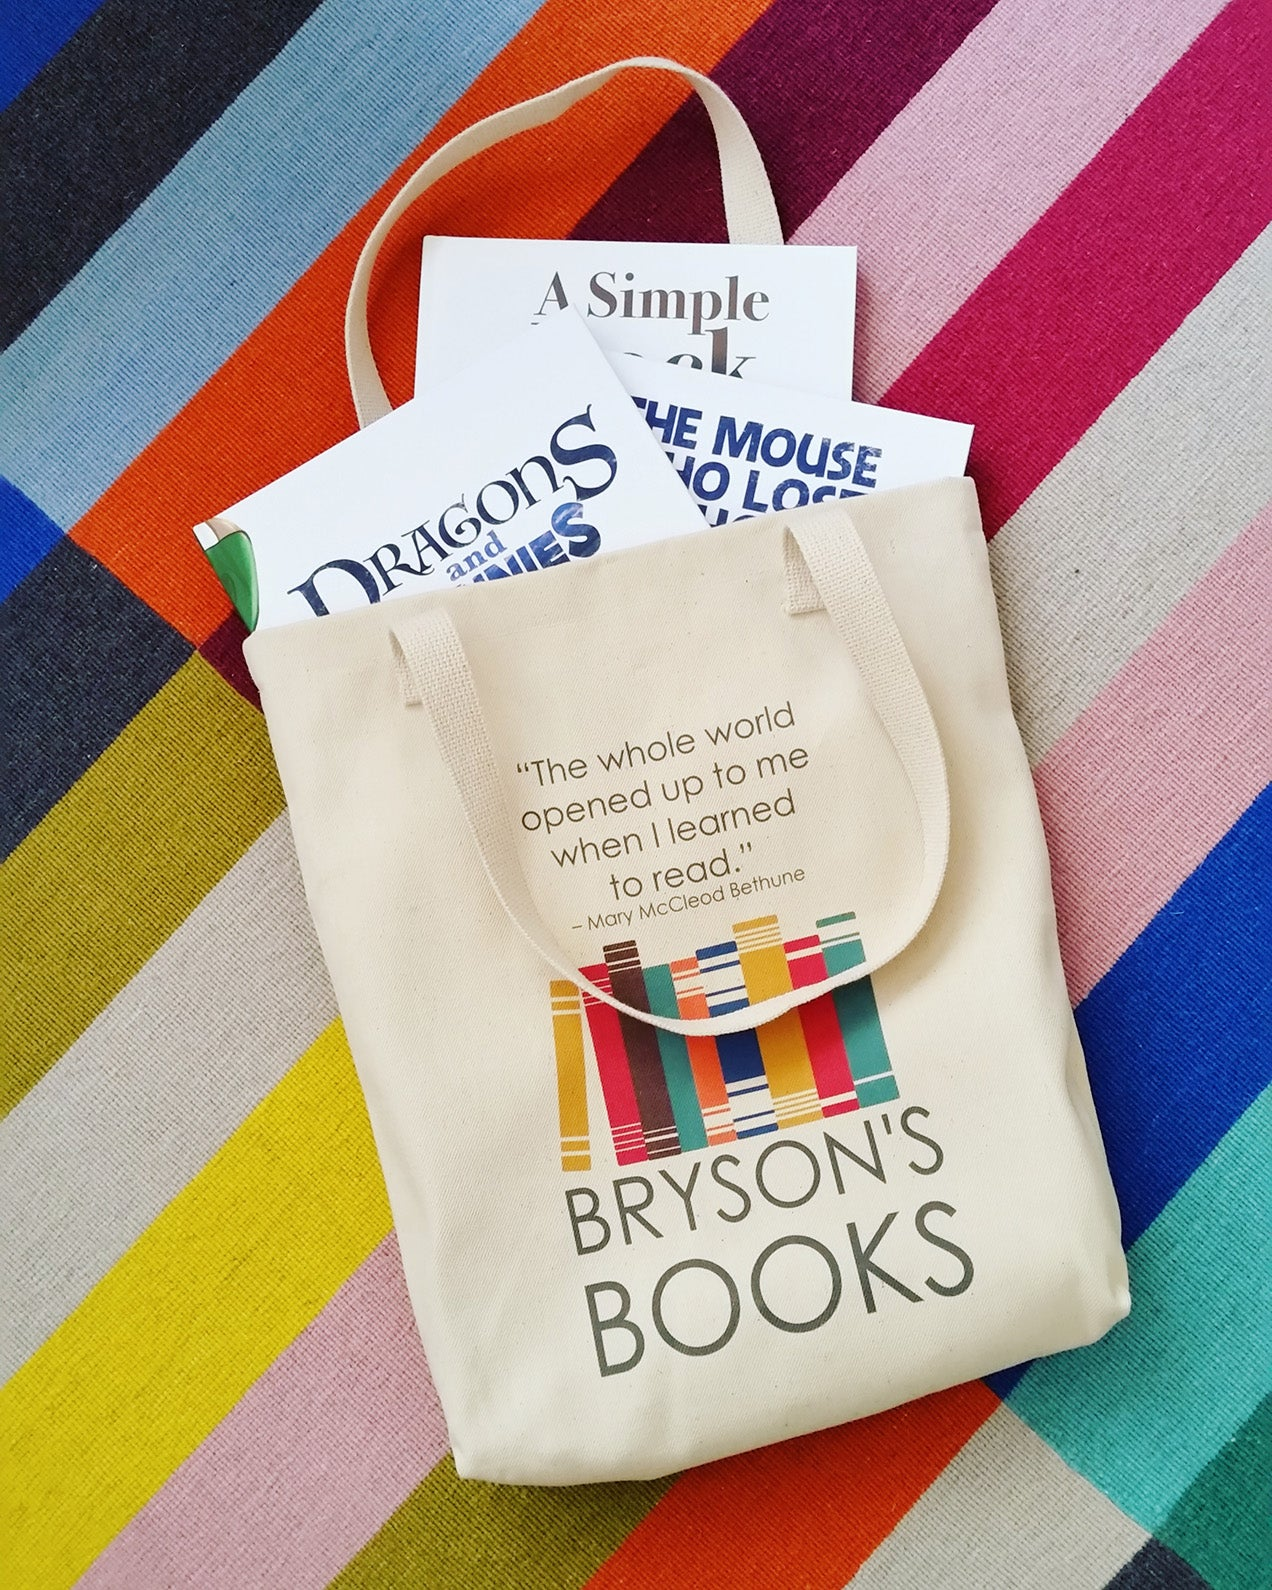 Bryson's Books bag image stripes